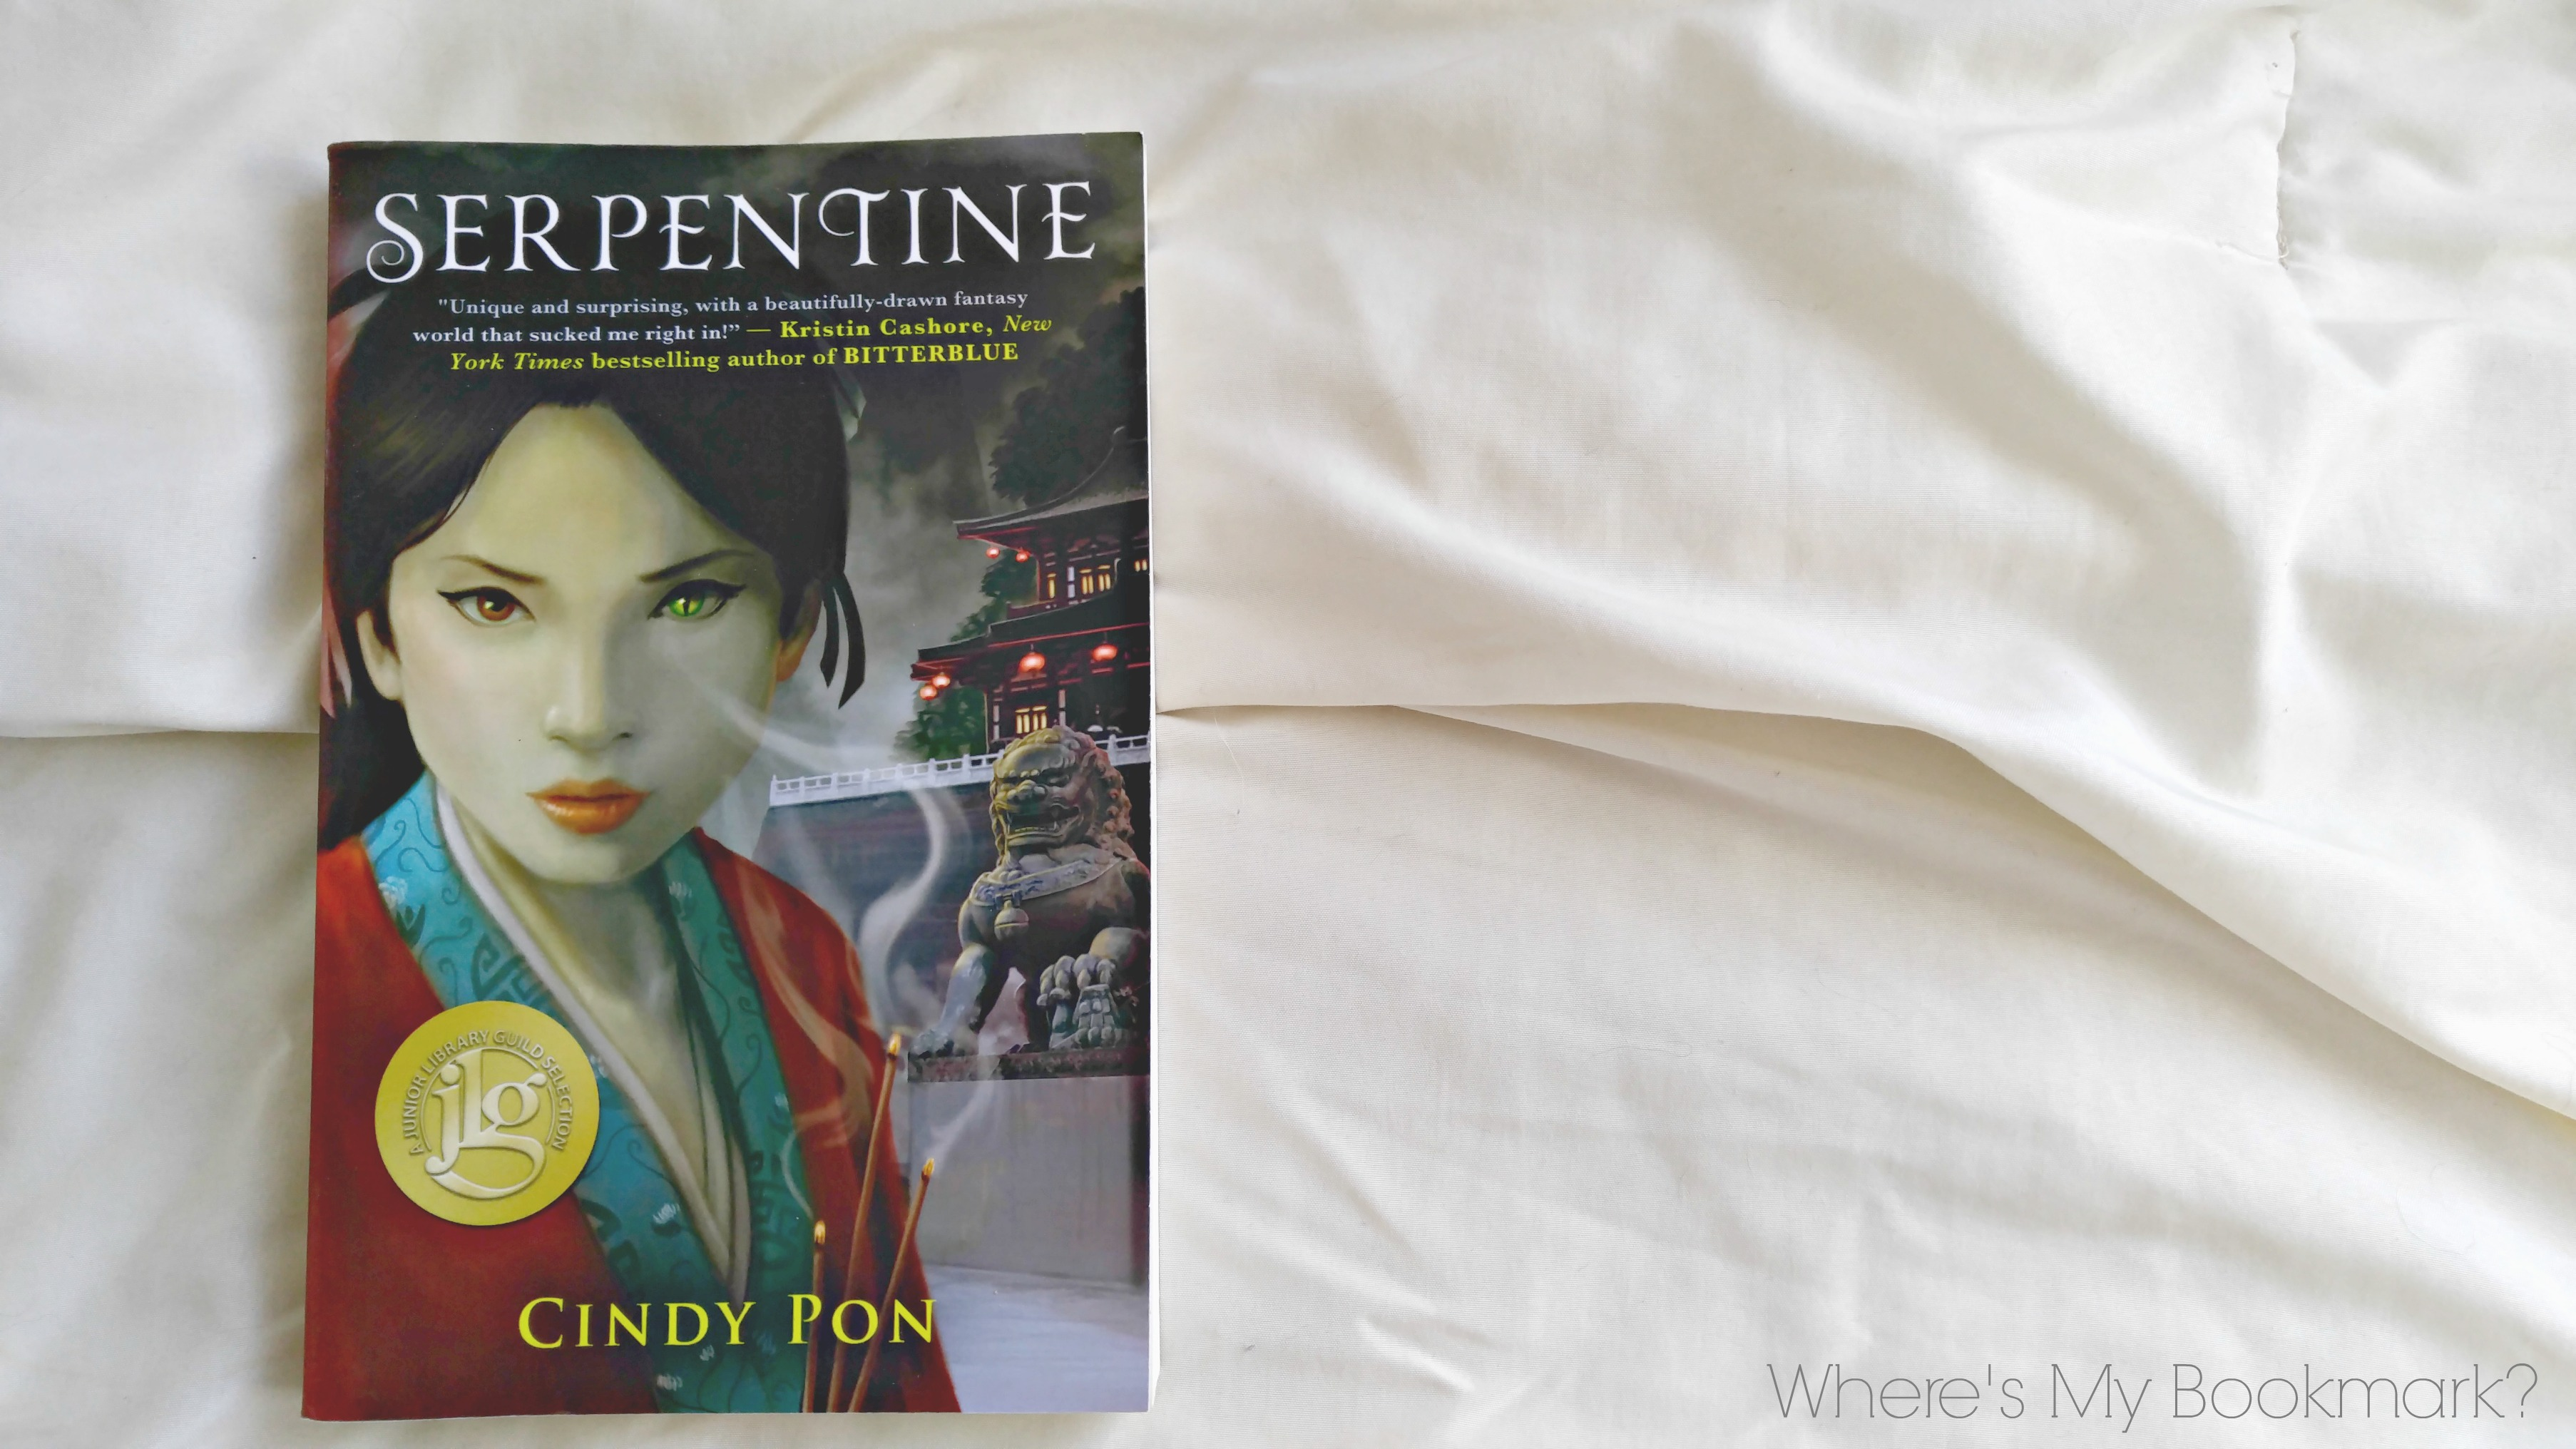 Serpentine By Cindy Pon Is The First Book In The Kingdom Of Xia Duology Her